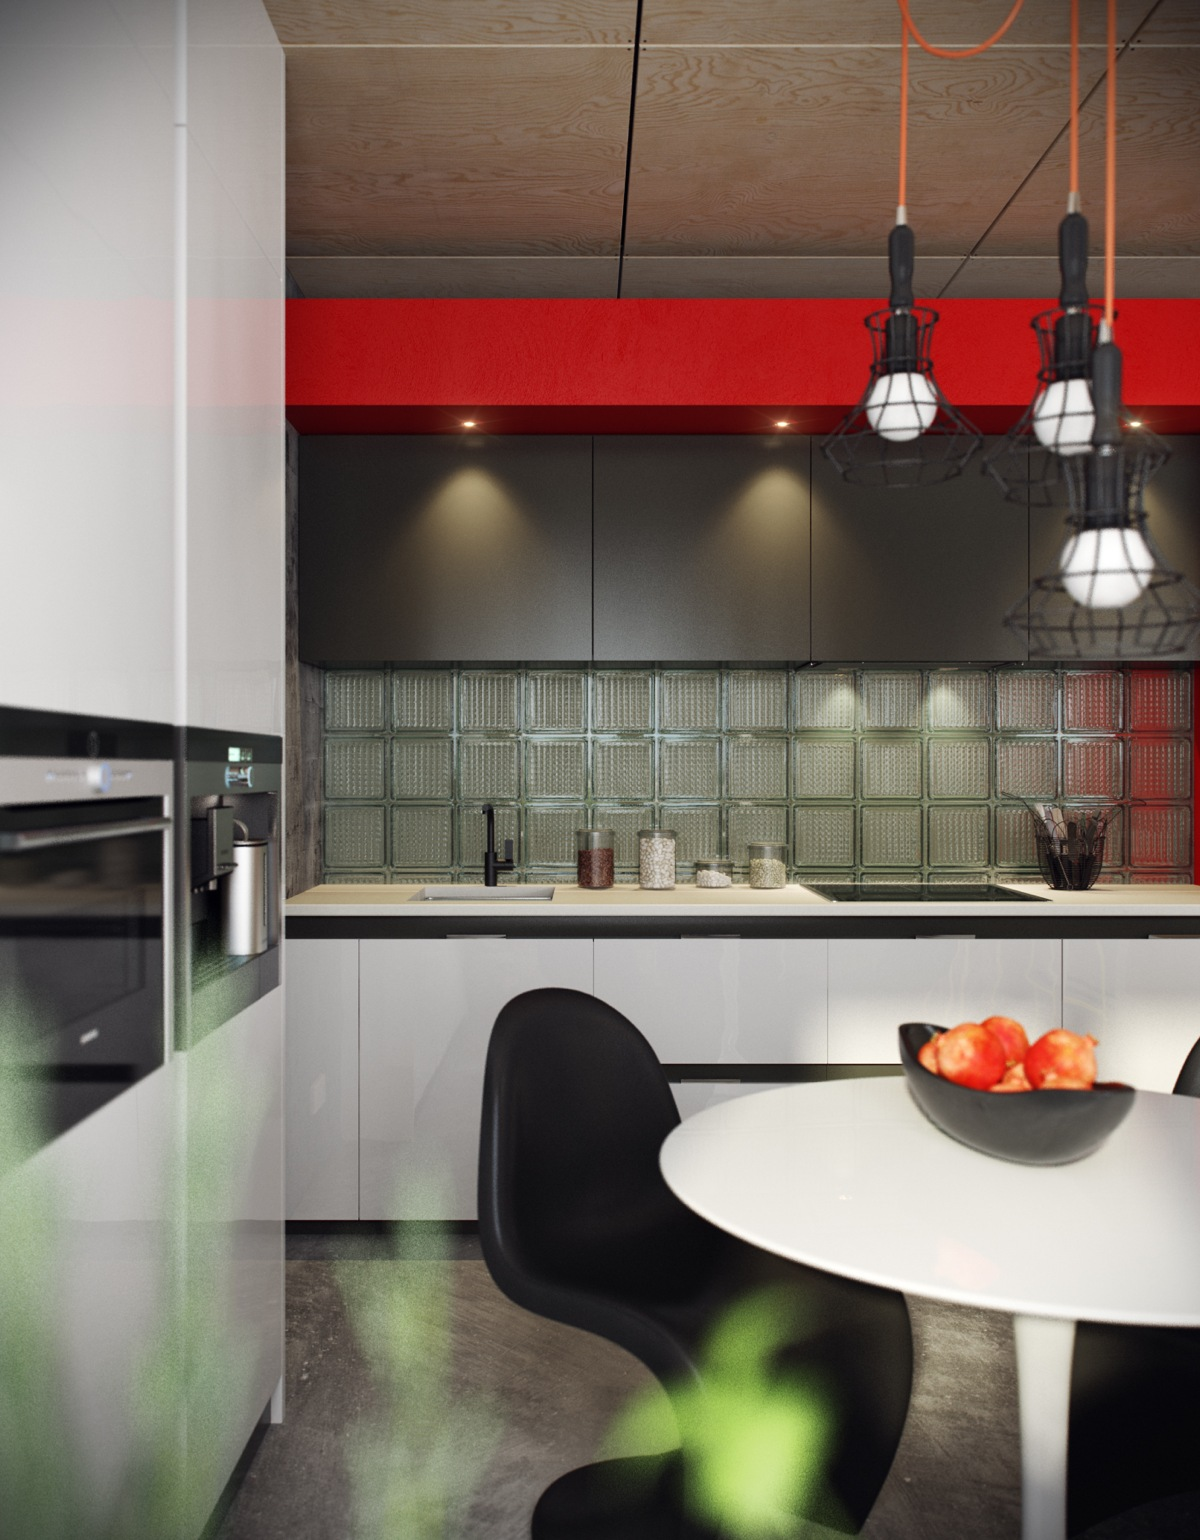 Frosted Glass Backsplash - 5 houses that put a modern twist on exposed brick